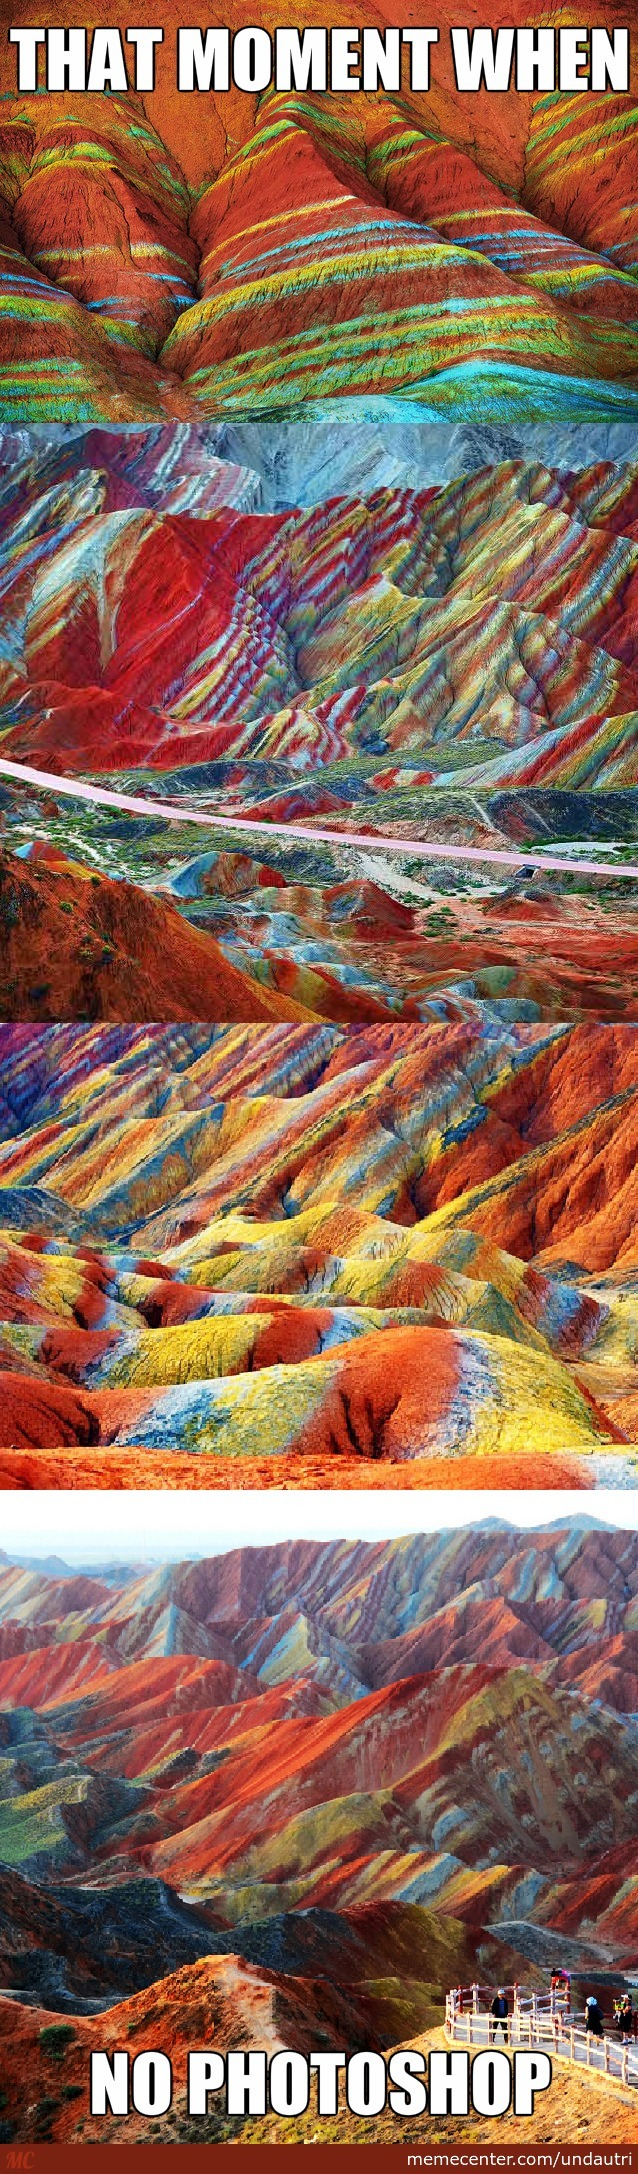 The Zhangye Danxia Mountains